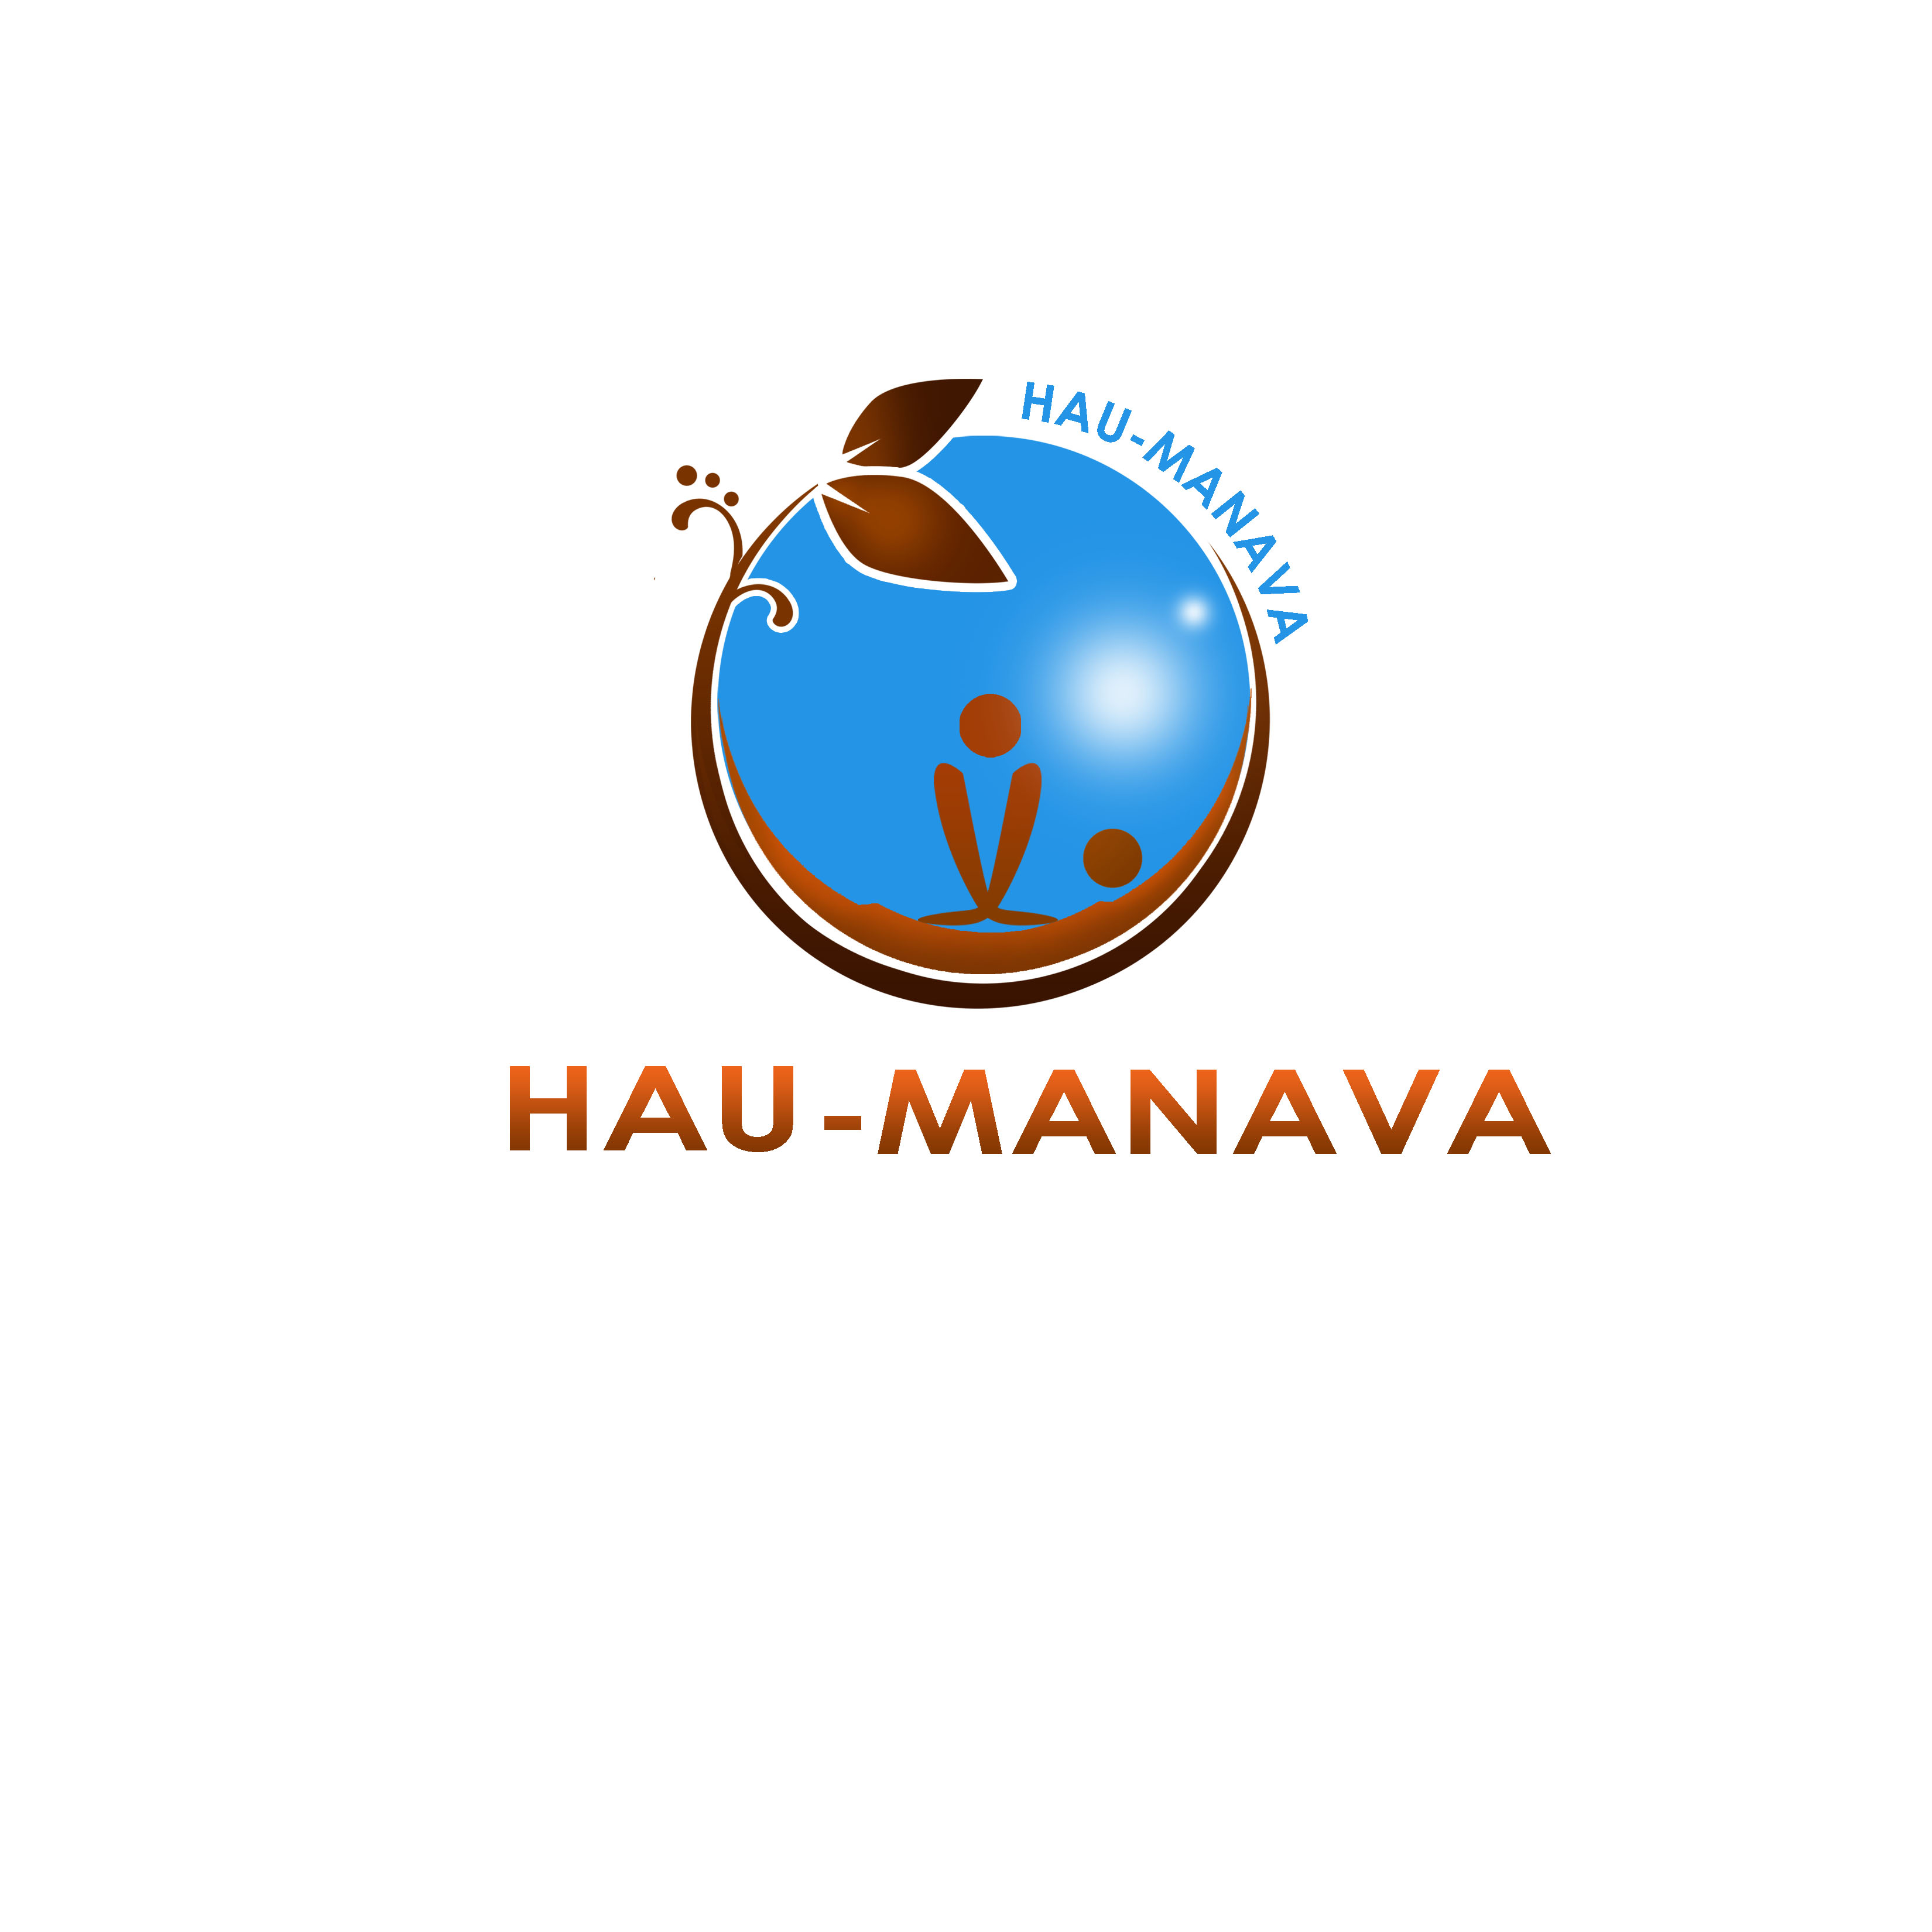 Logo Design by Allan Esclamado - Entry No. 11 in the Logo Design Contest Hau-Manava Logo Design.